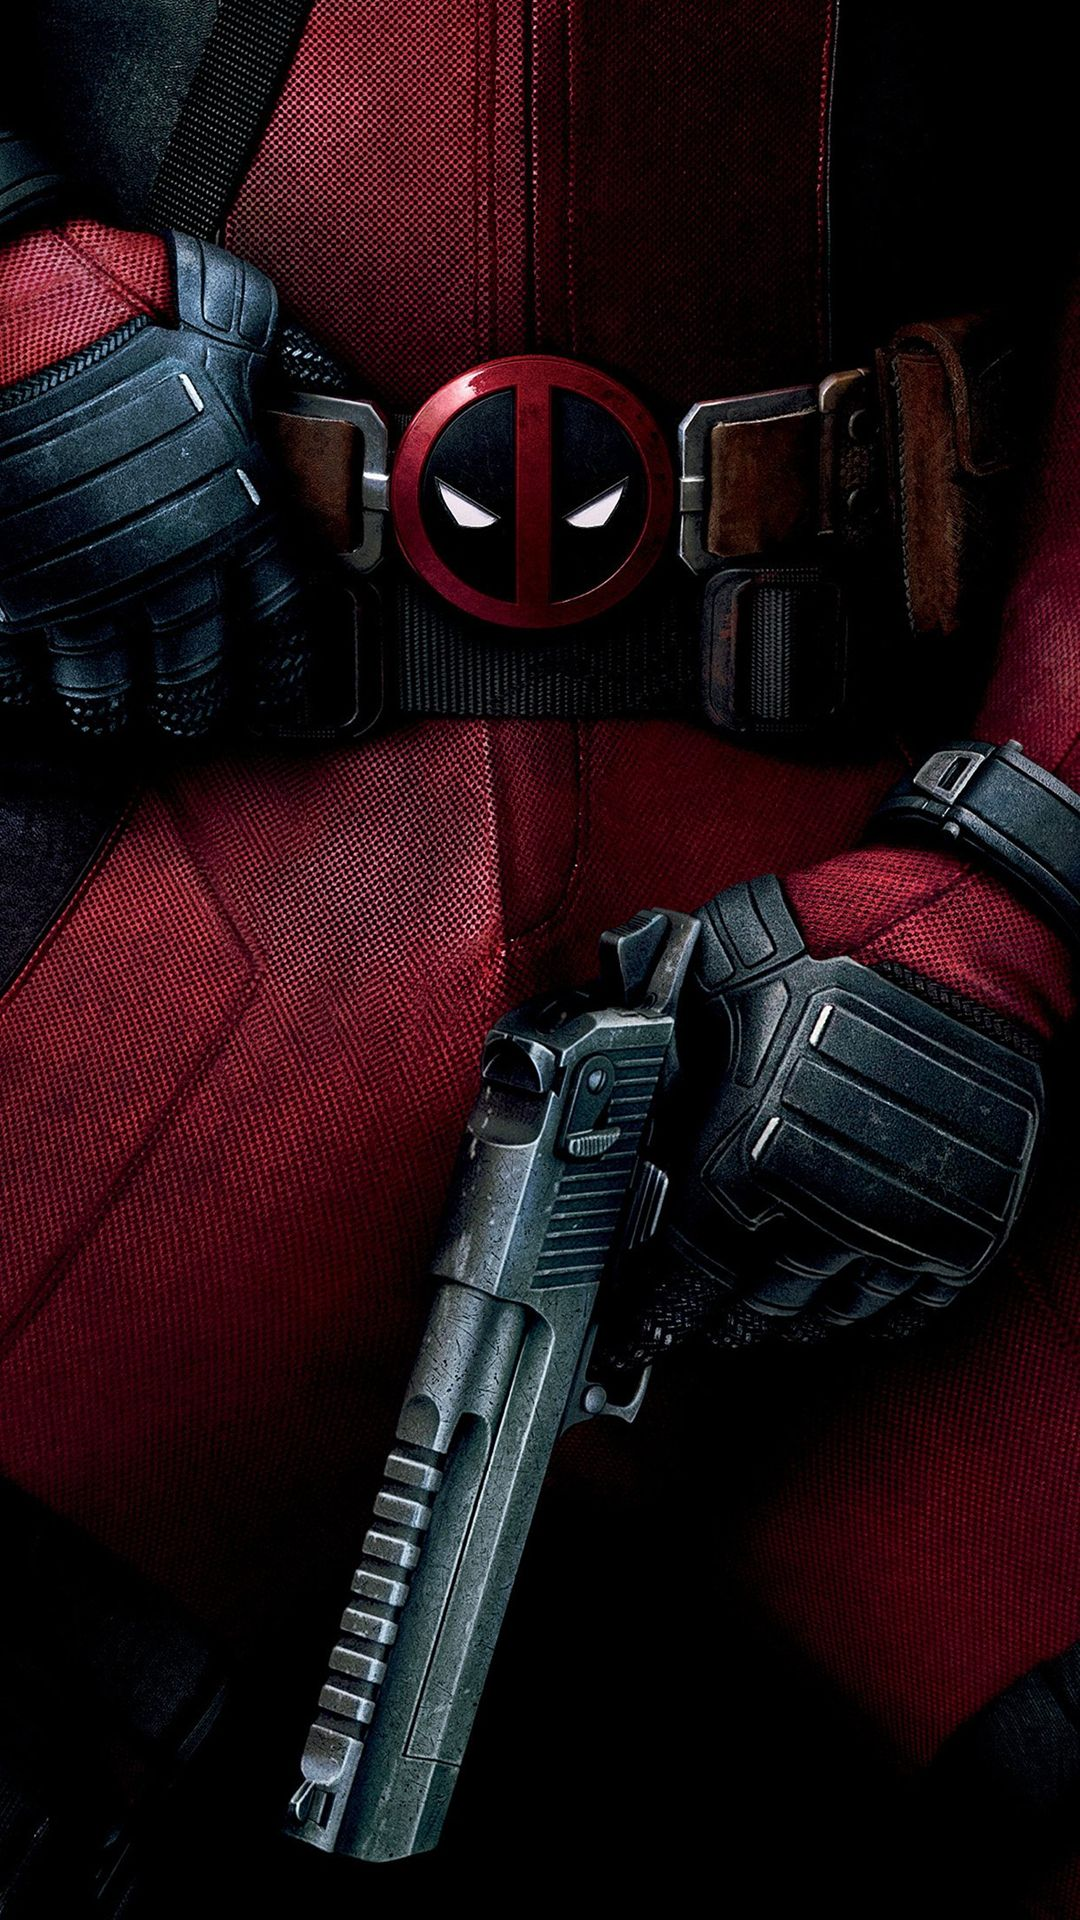 iPhone Wallpapers HD from hupages.com, Deadpool Background Hd Wallpaper » Hupages » Download Iphone Wallpapers Deadpool Background Hd Wallpaper For Iphone Wallpaper on Hupages.com, if you like it dont forget save it or repin it. Have A Nice Day. #iphone #android #wallpaper #Deadpool #Background #Hd